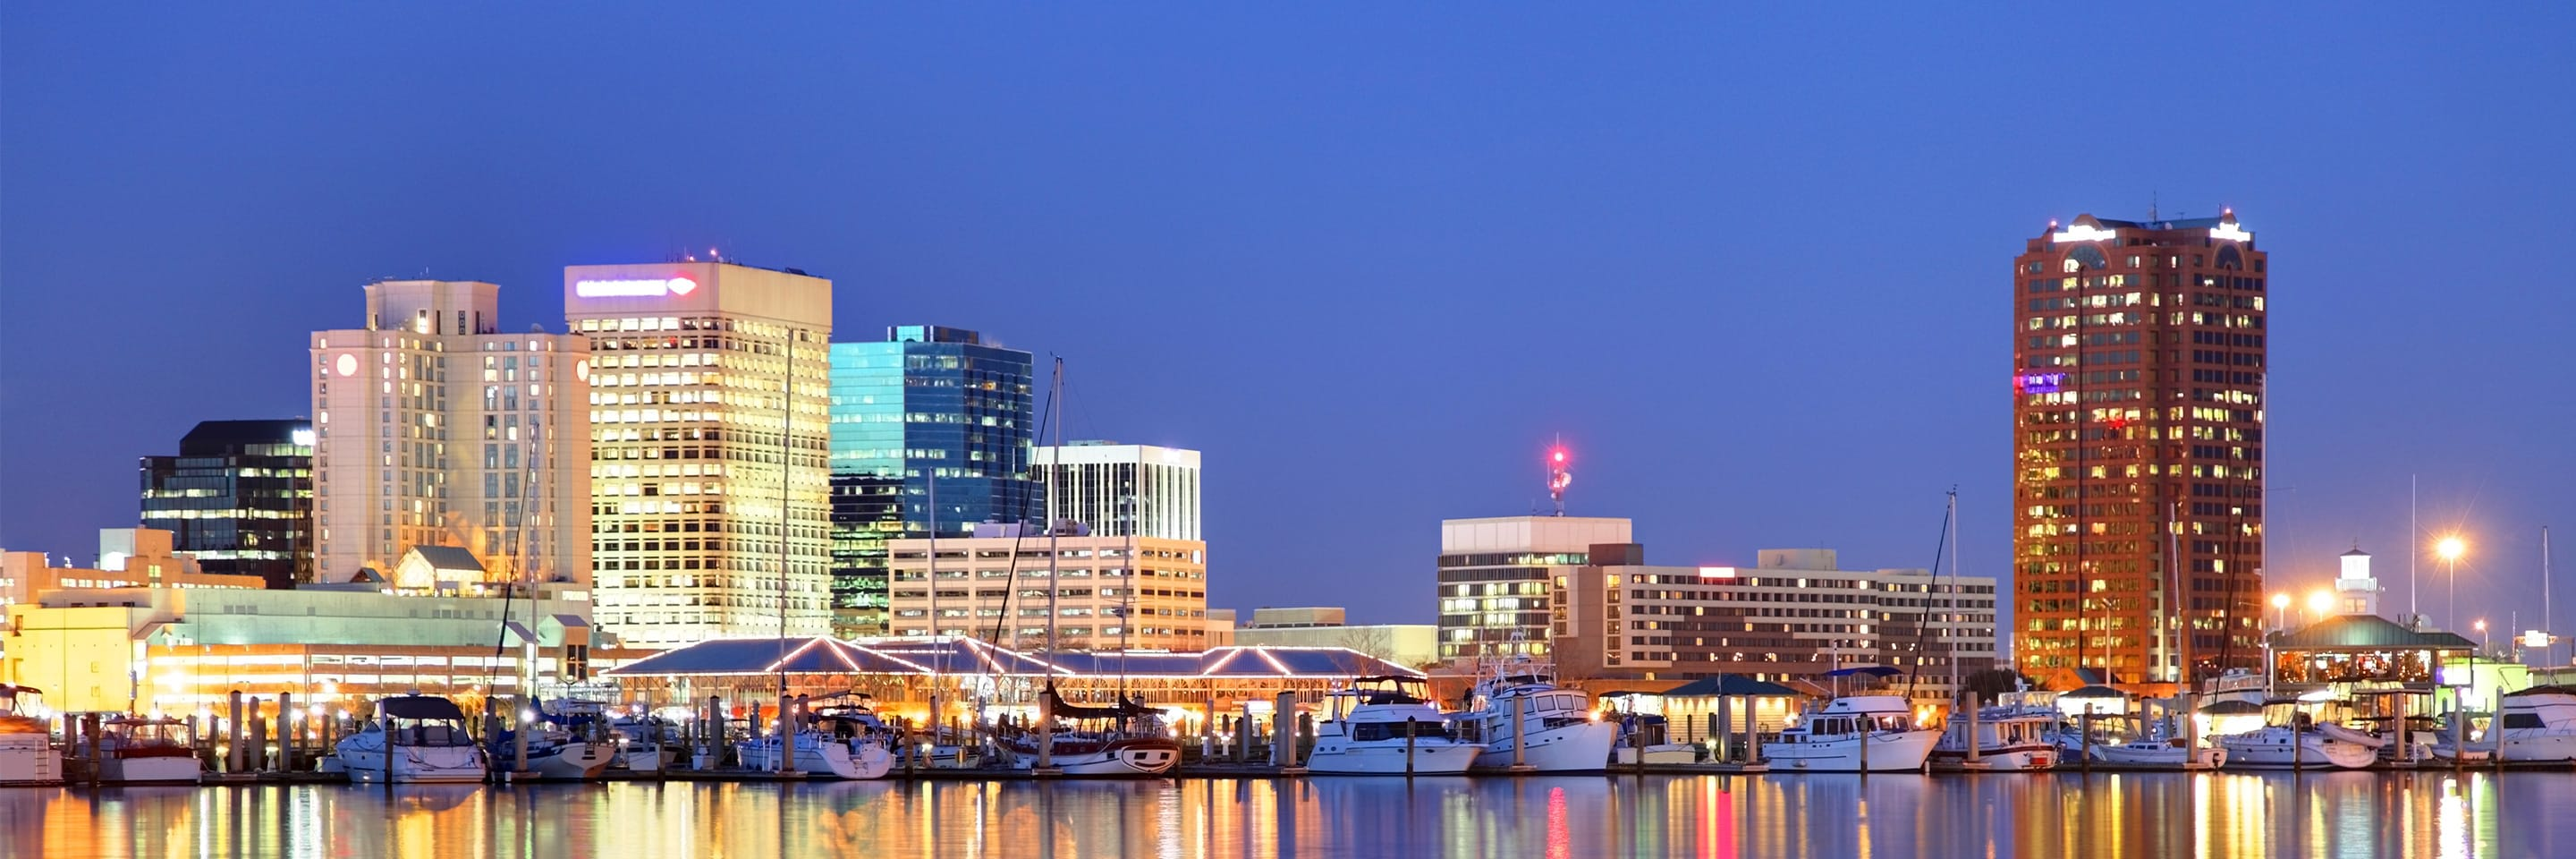 Hotels in Chesapeake